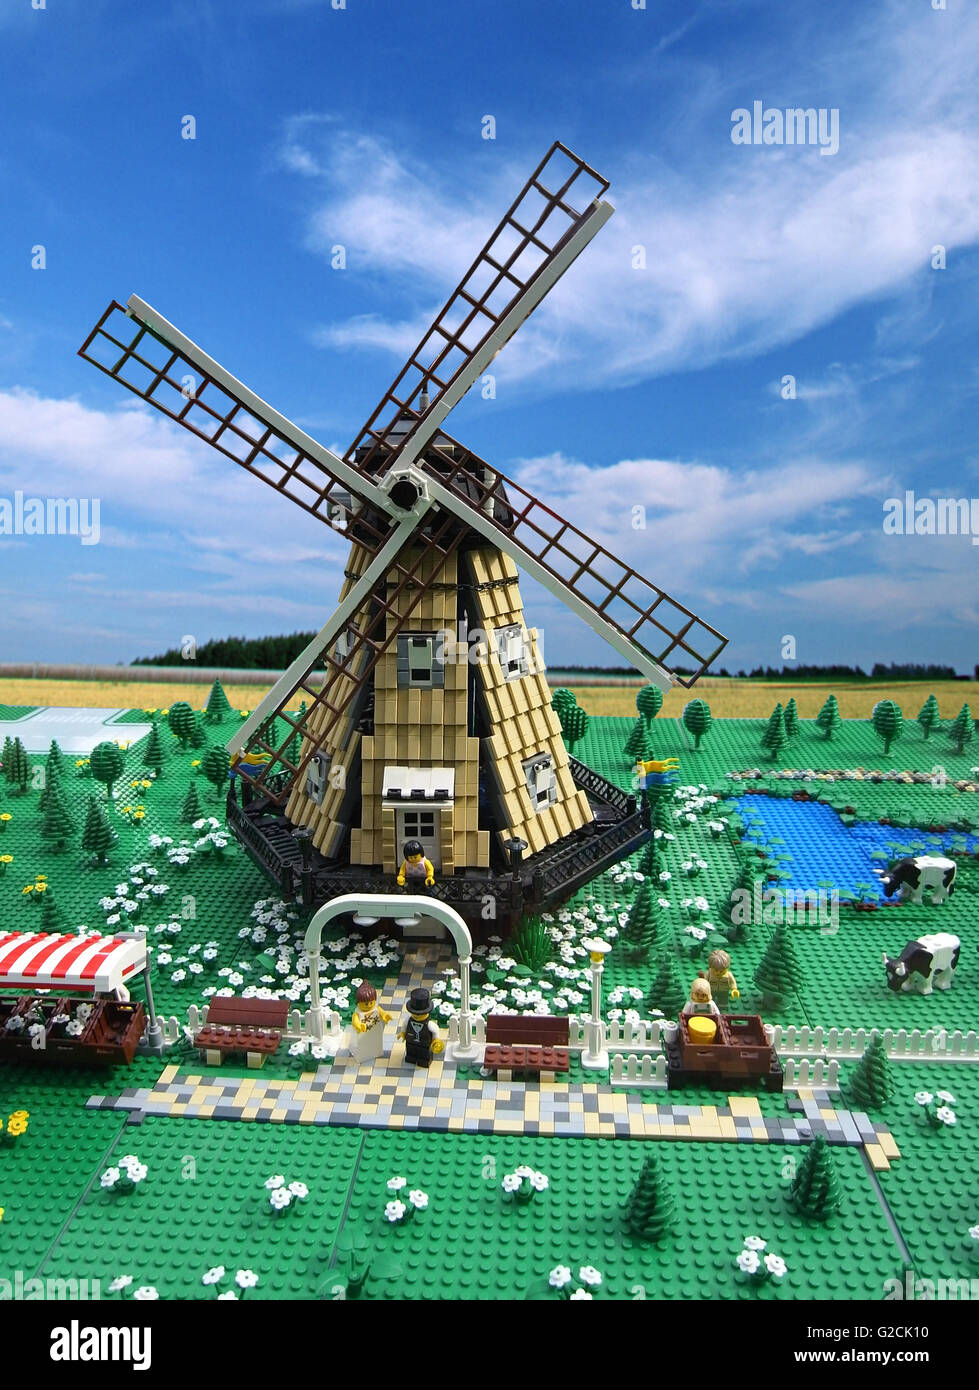 Lego Model build ancient old time day sky toy fun landscape